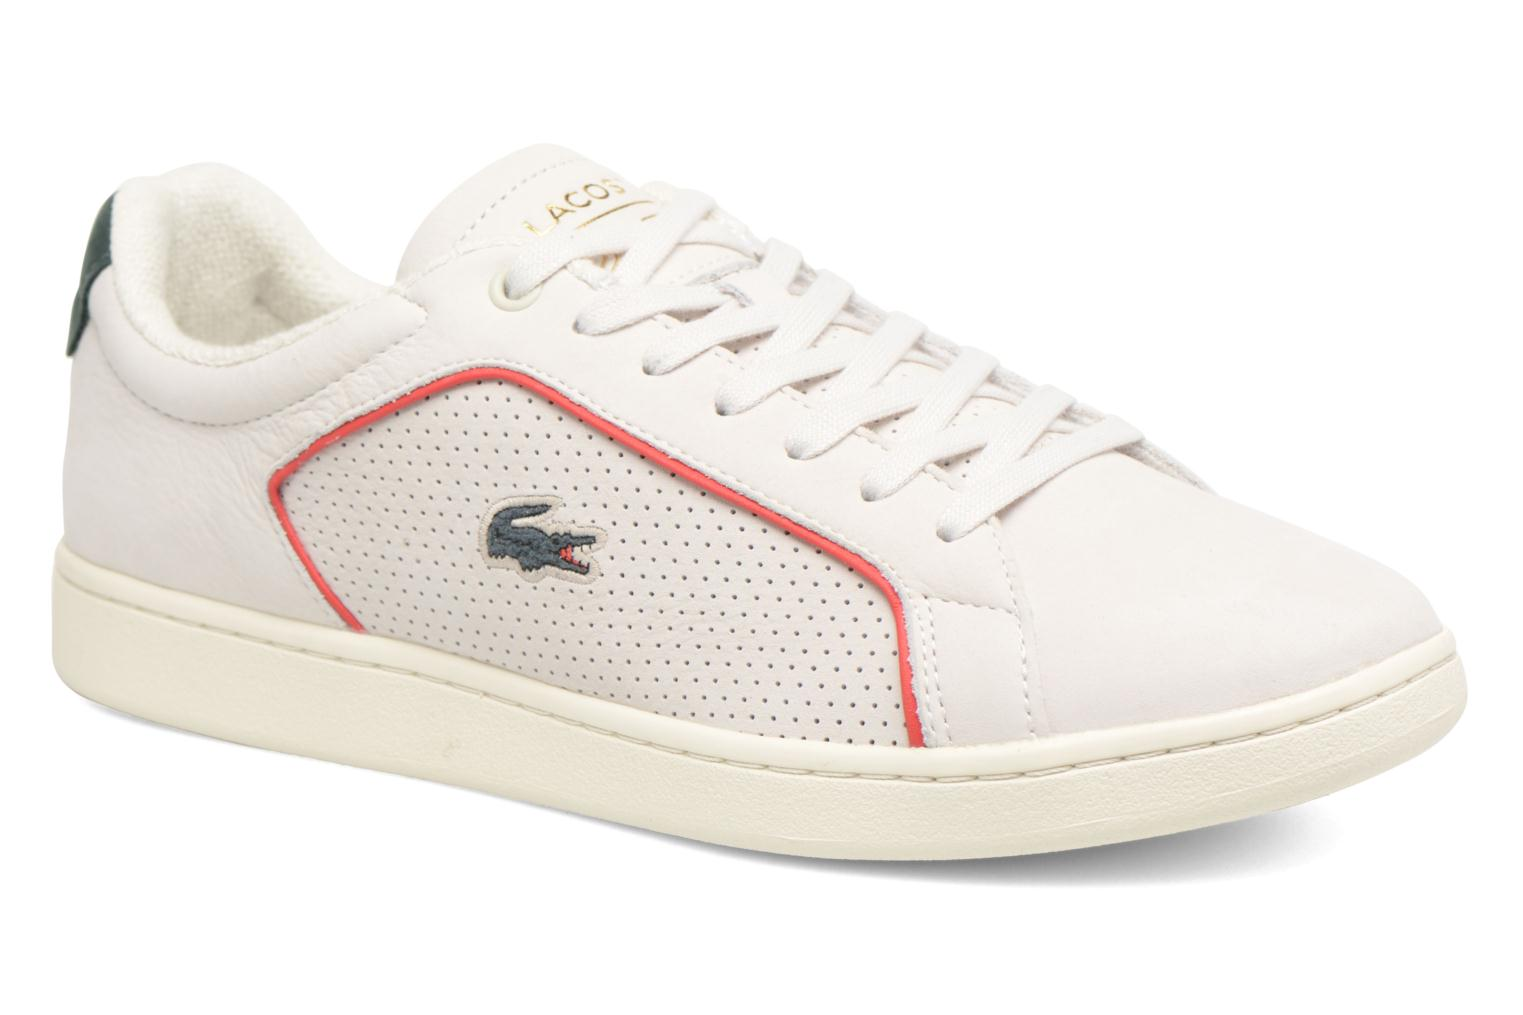 Marques Chaussure homme Lacoste homme CARNABY EVO 118 1 OFF WHT/RED